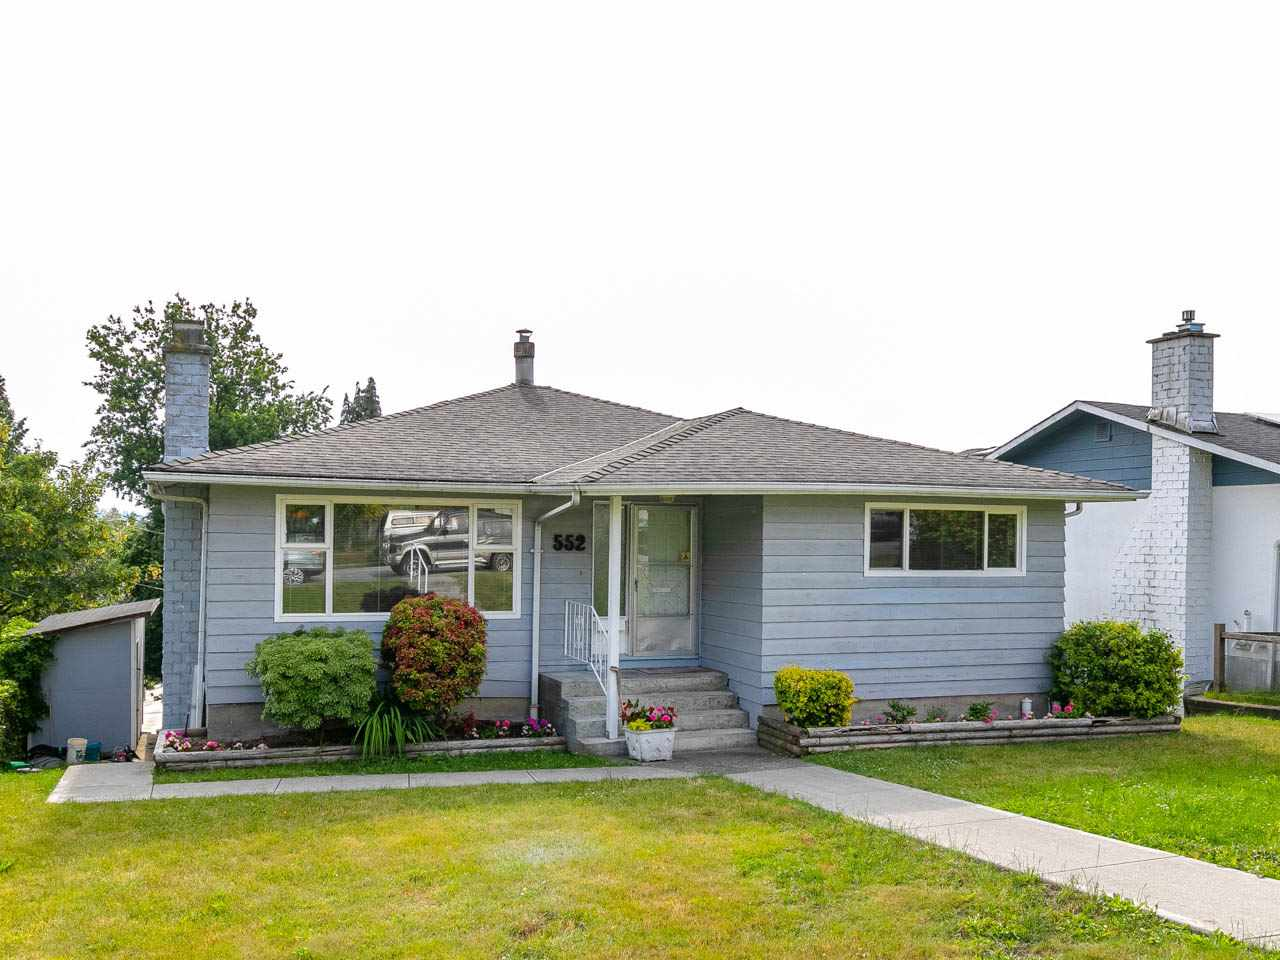 Excellent bungalow with five bedrooms and 3 bathrooms. Legal suite downstairs plus a bedroom and family room for upstairs use. Move in condition, renovated home with brand new bathrooms, sundeck, pot lighting, doors, fence, hot water tank as well as newer kitchens, newer windows, 9 year old roof and hardwood floors. Lovely view of Mount Baker. Priced below assessed value.